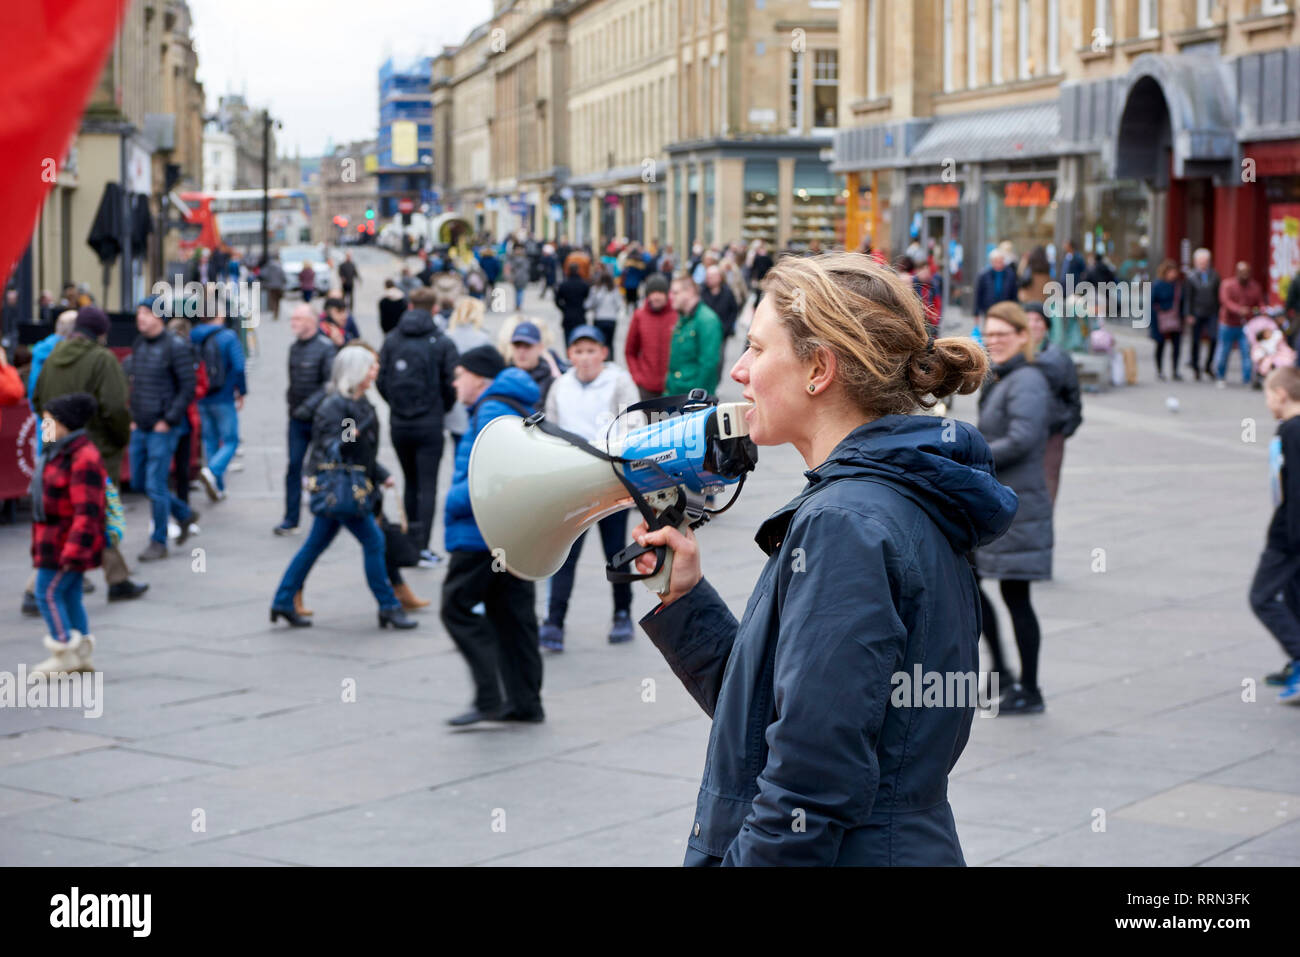 Street protestor with megaphone, Newcastle Upon Tyne, City Centre on a busy Saturday, North East England, UK - Stock Image